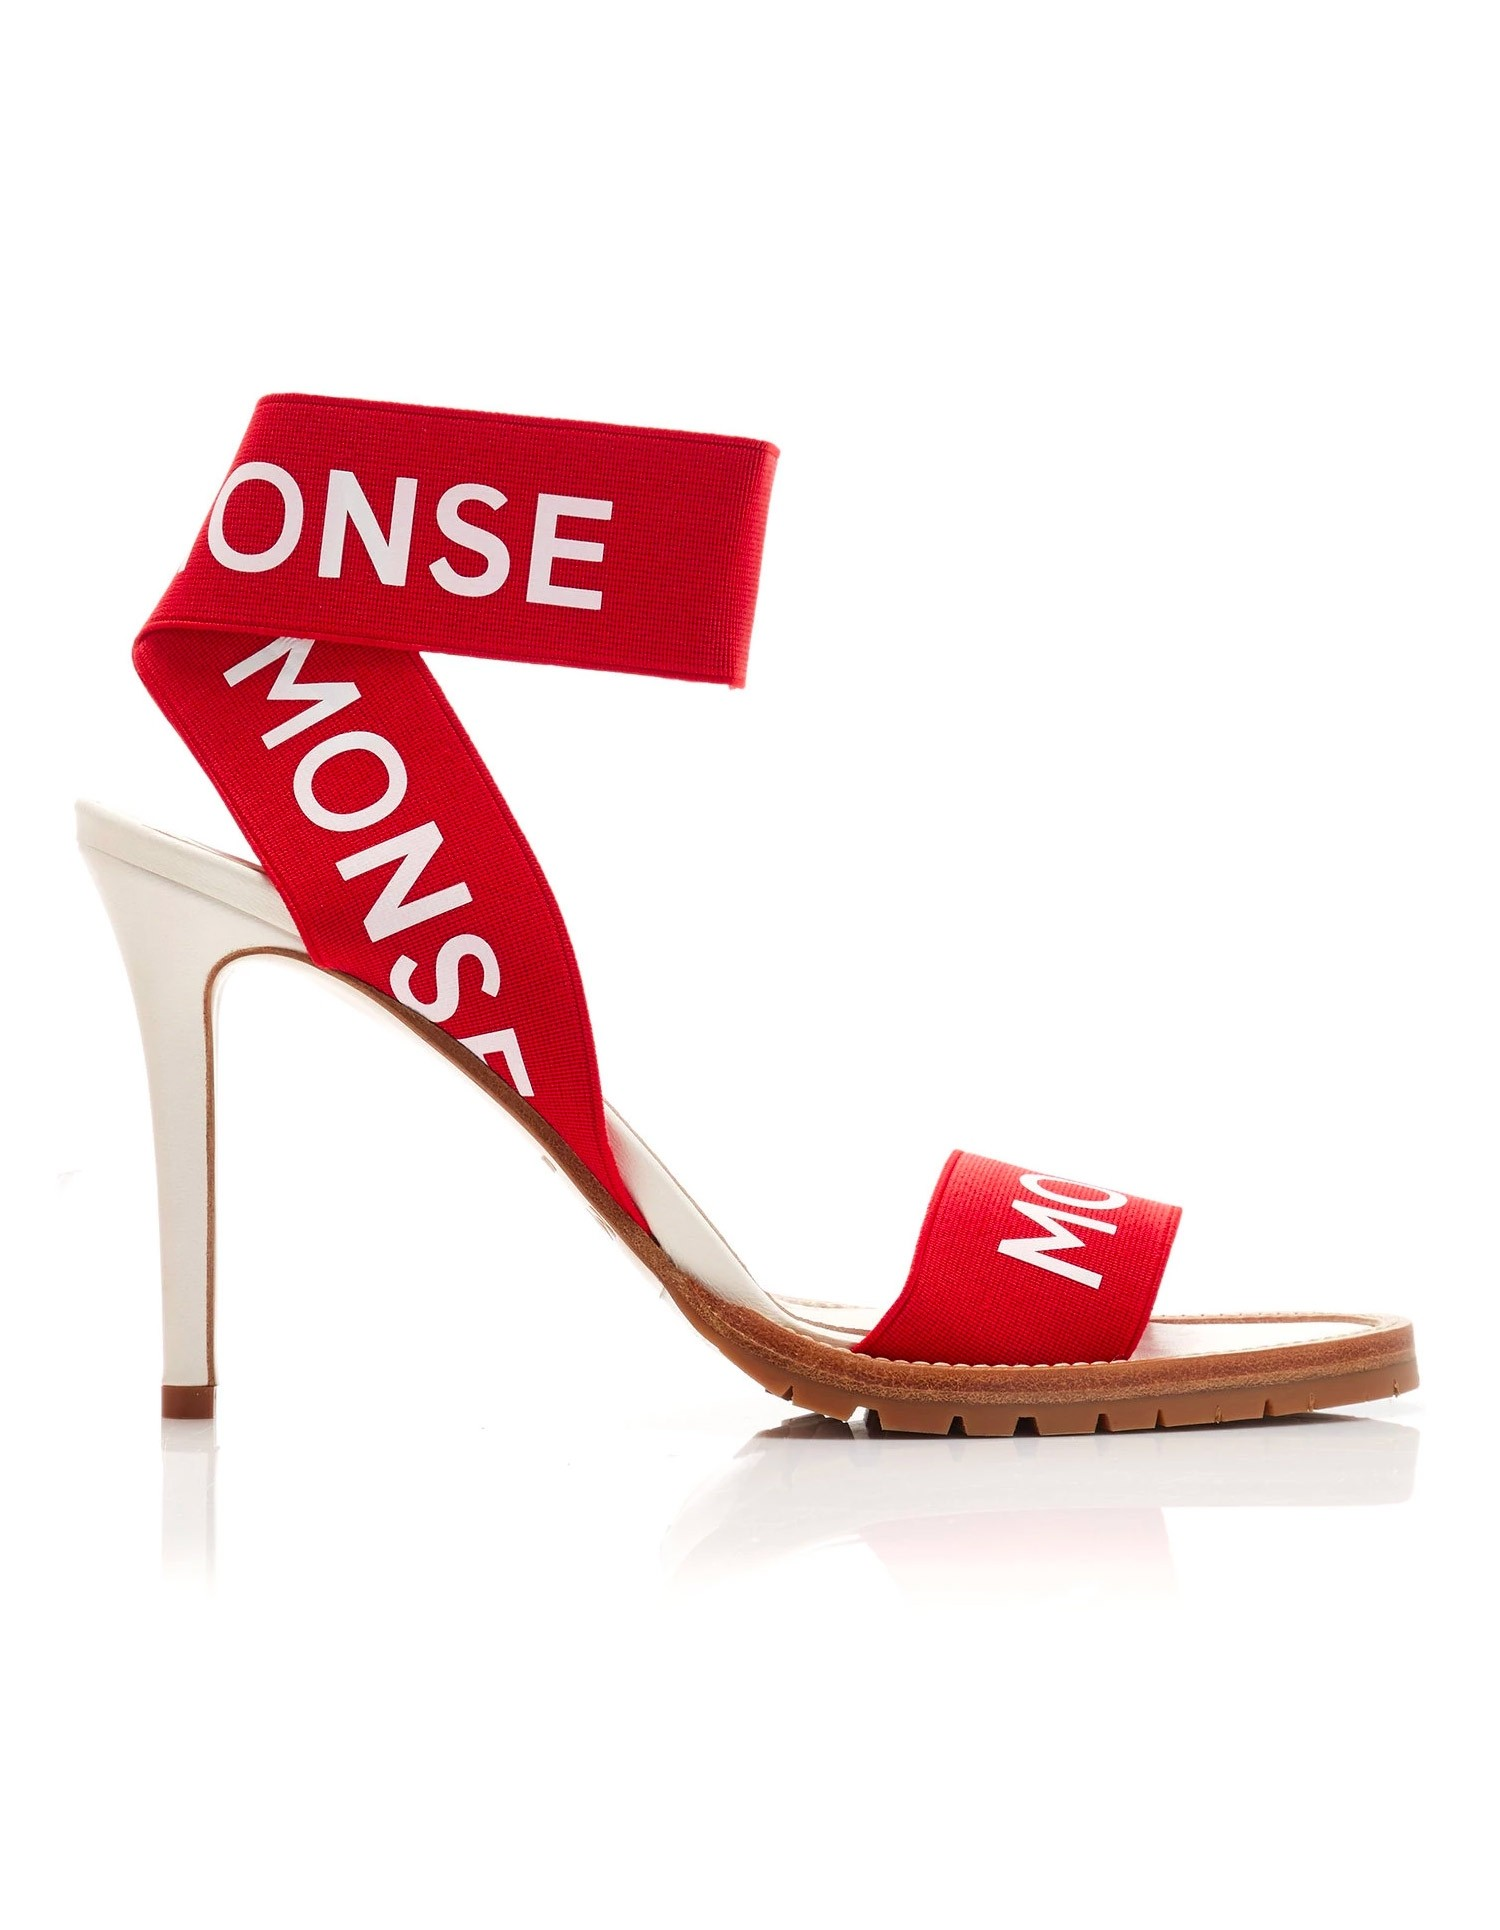 Monse Stretch Strap Heel Red